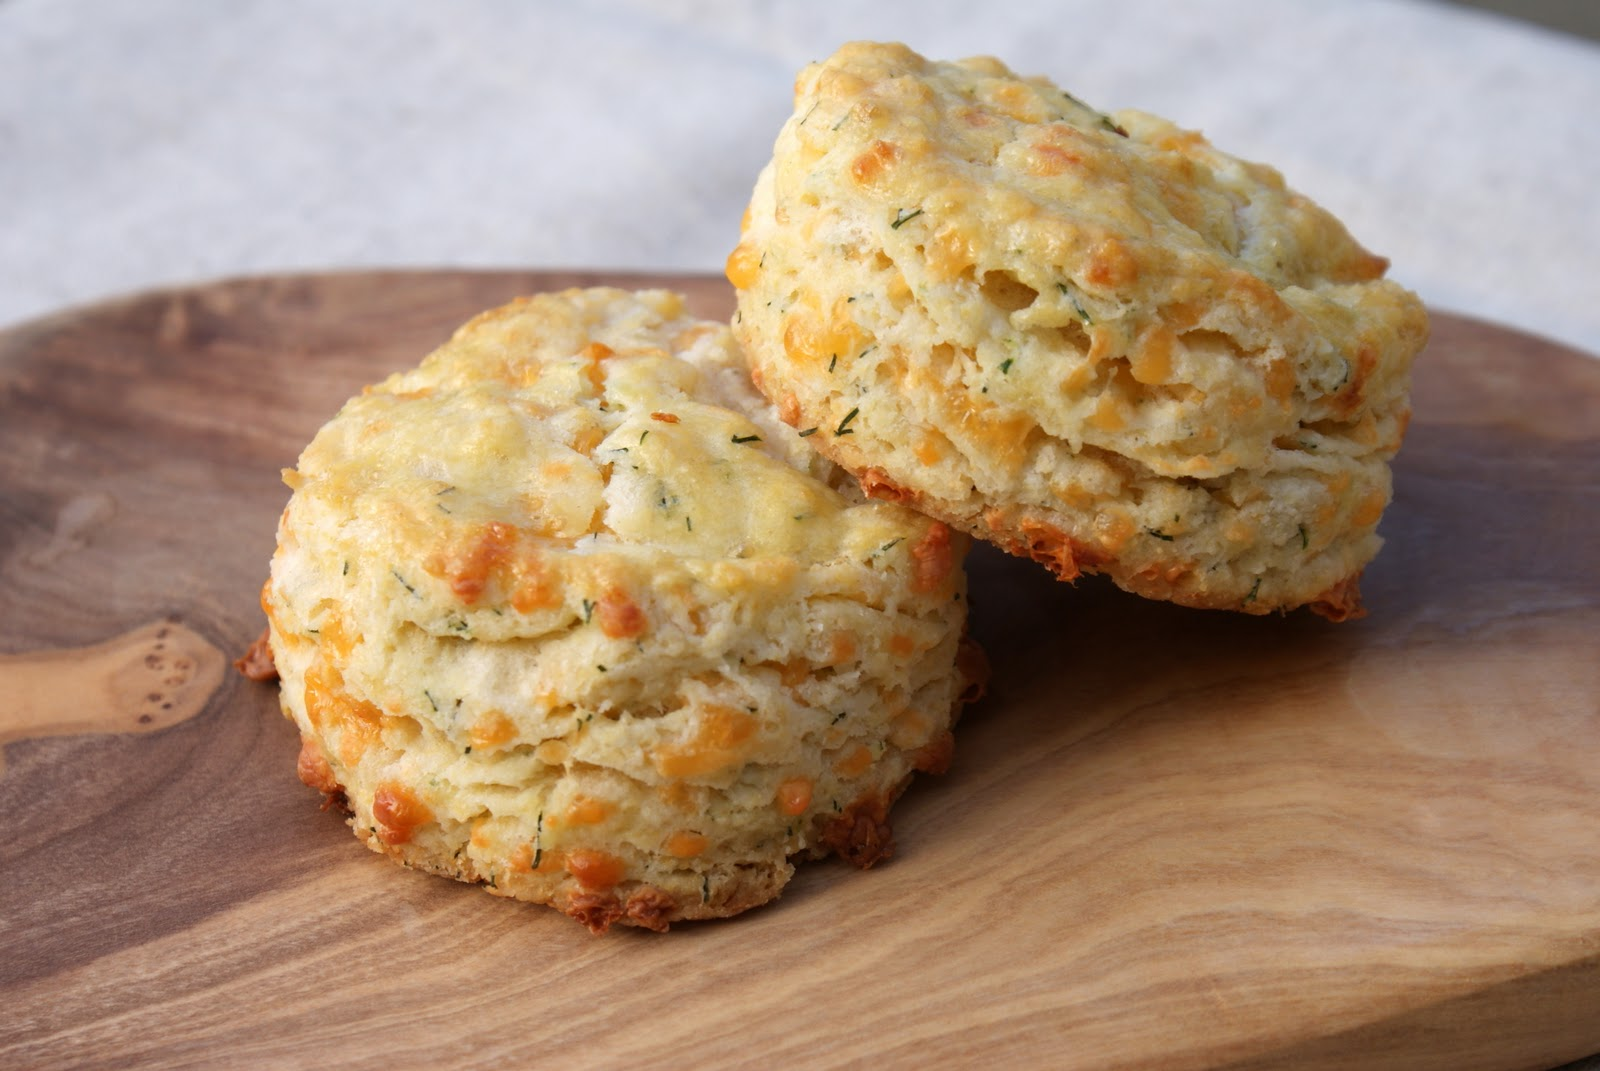 Authentic Suburban Gourmet: Cheddar-Dill Scones